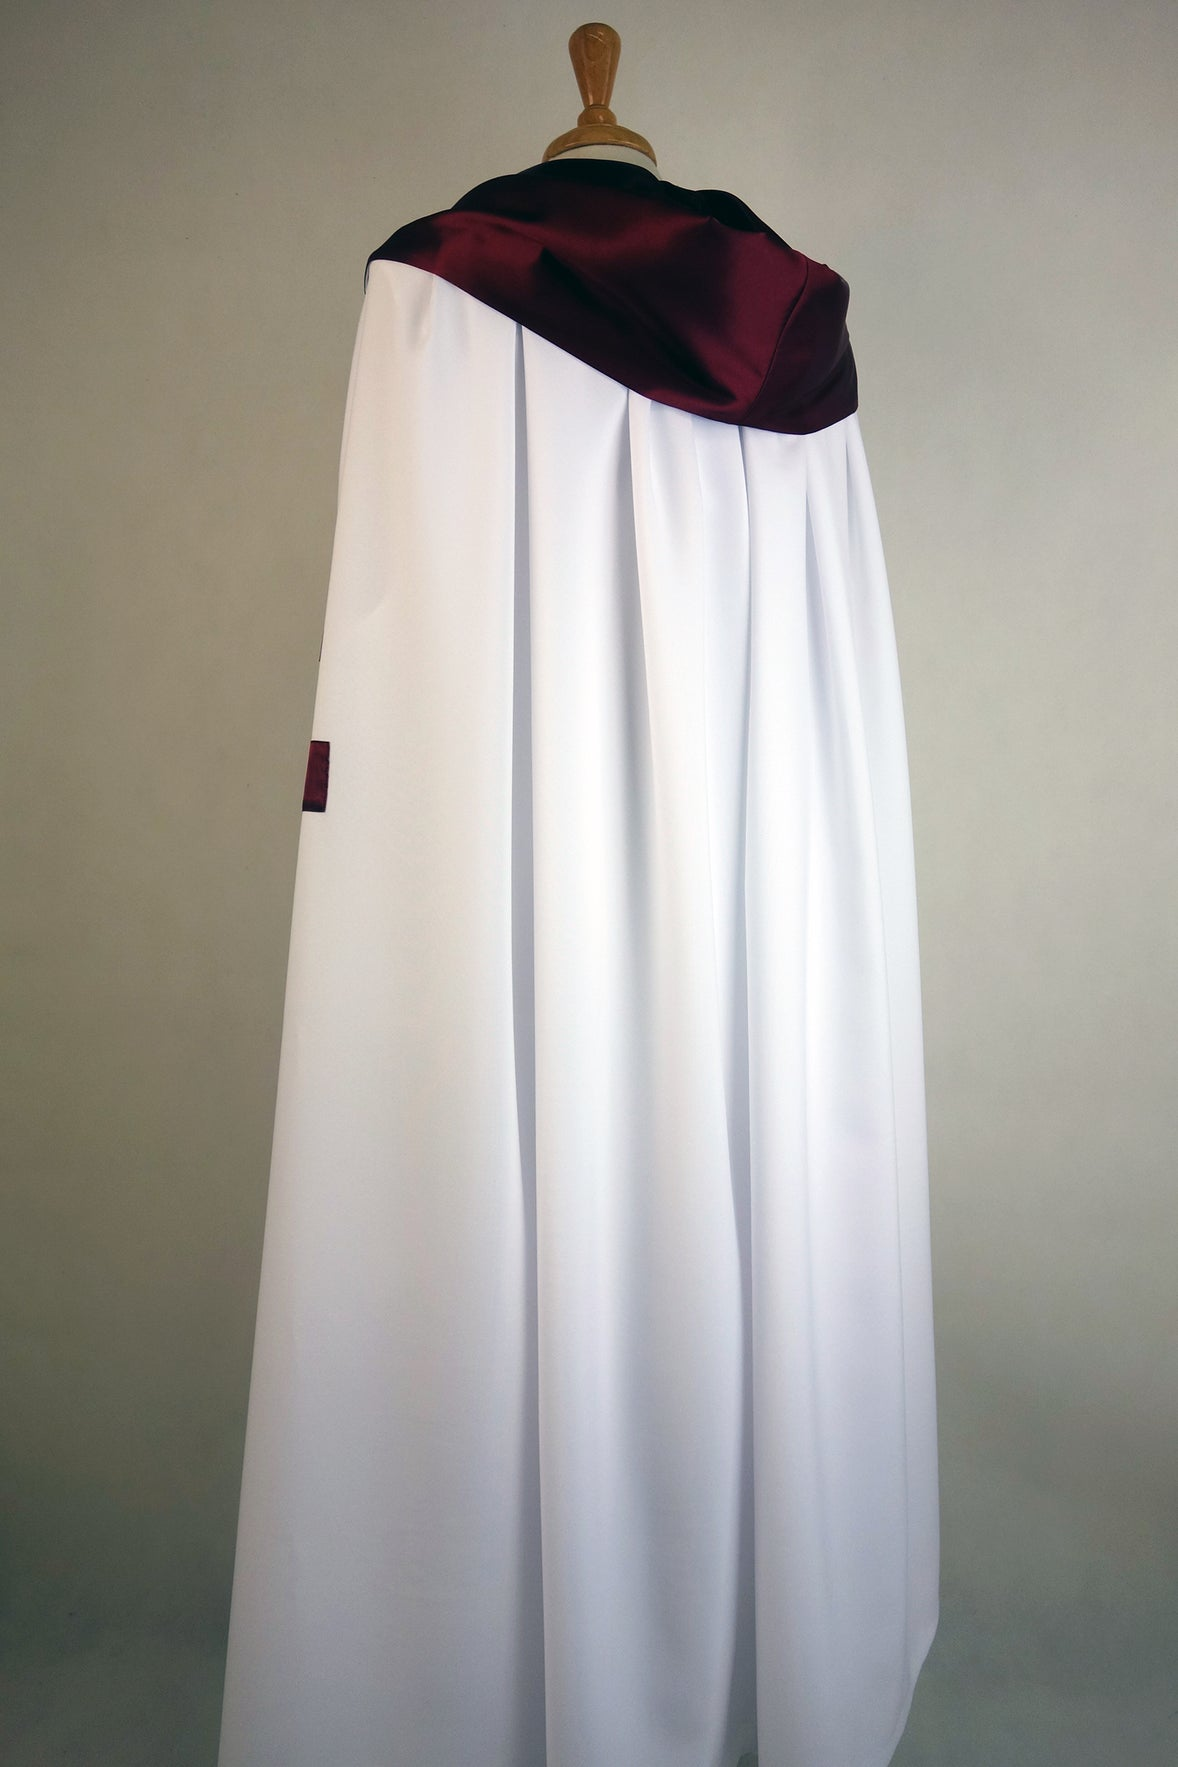 Preceptor Mantle and Tunic